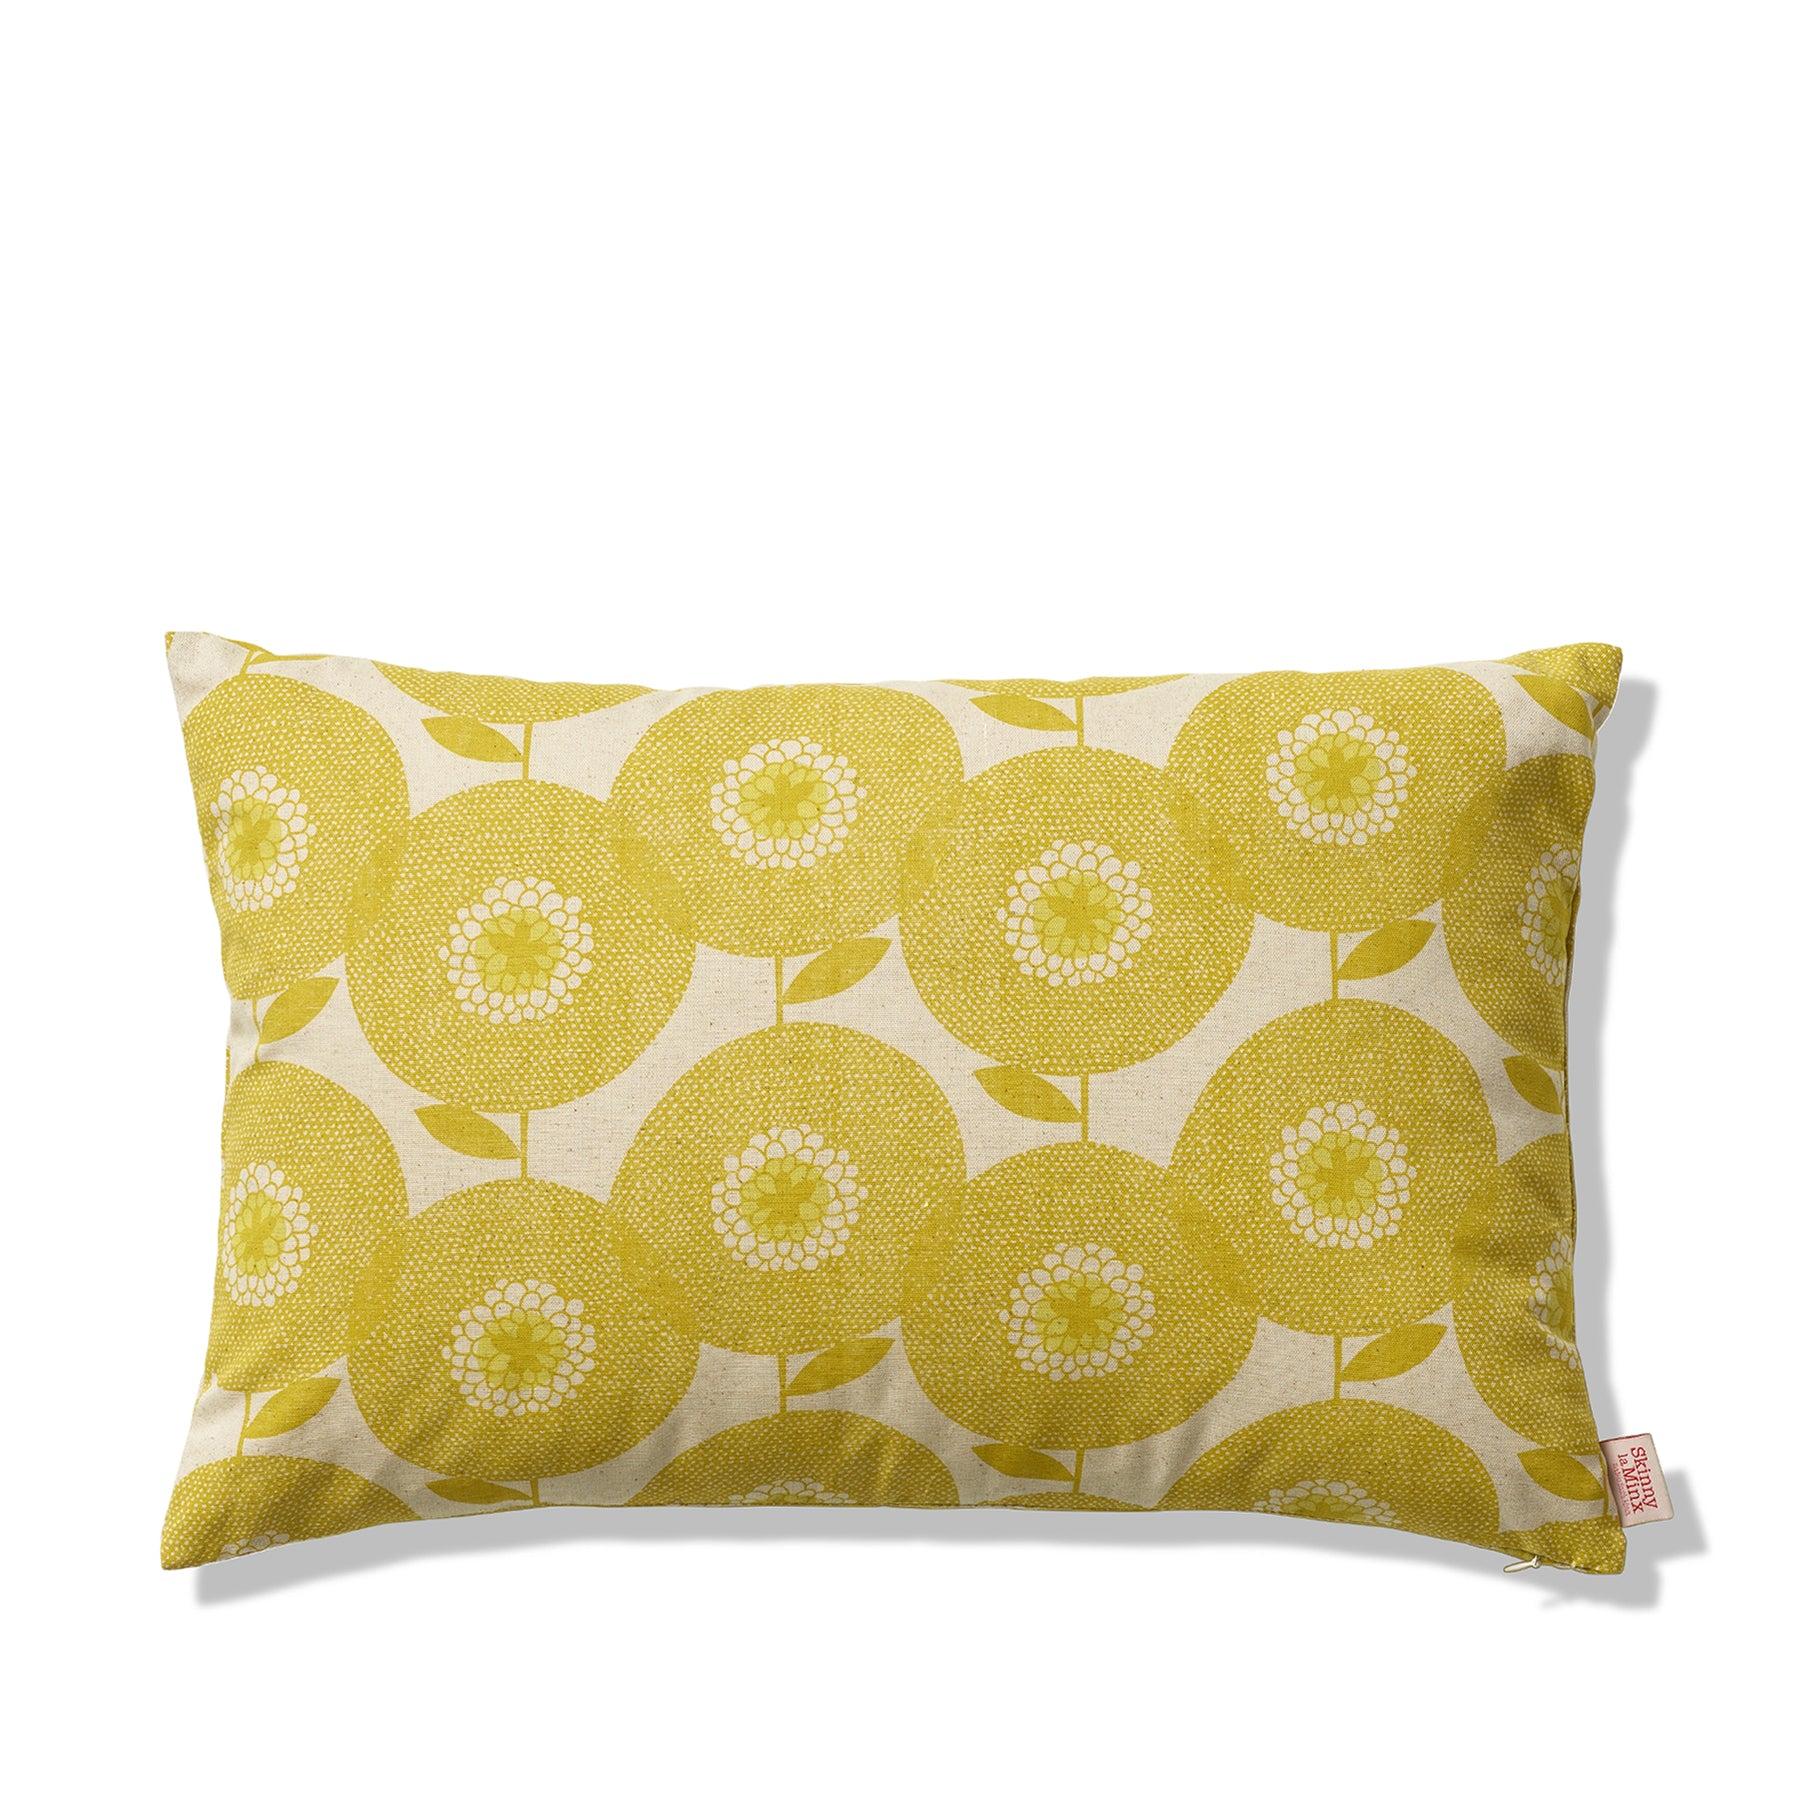 Flowerfields Pillow in Goldenrod Zoom Image 1